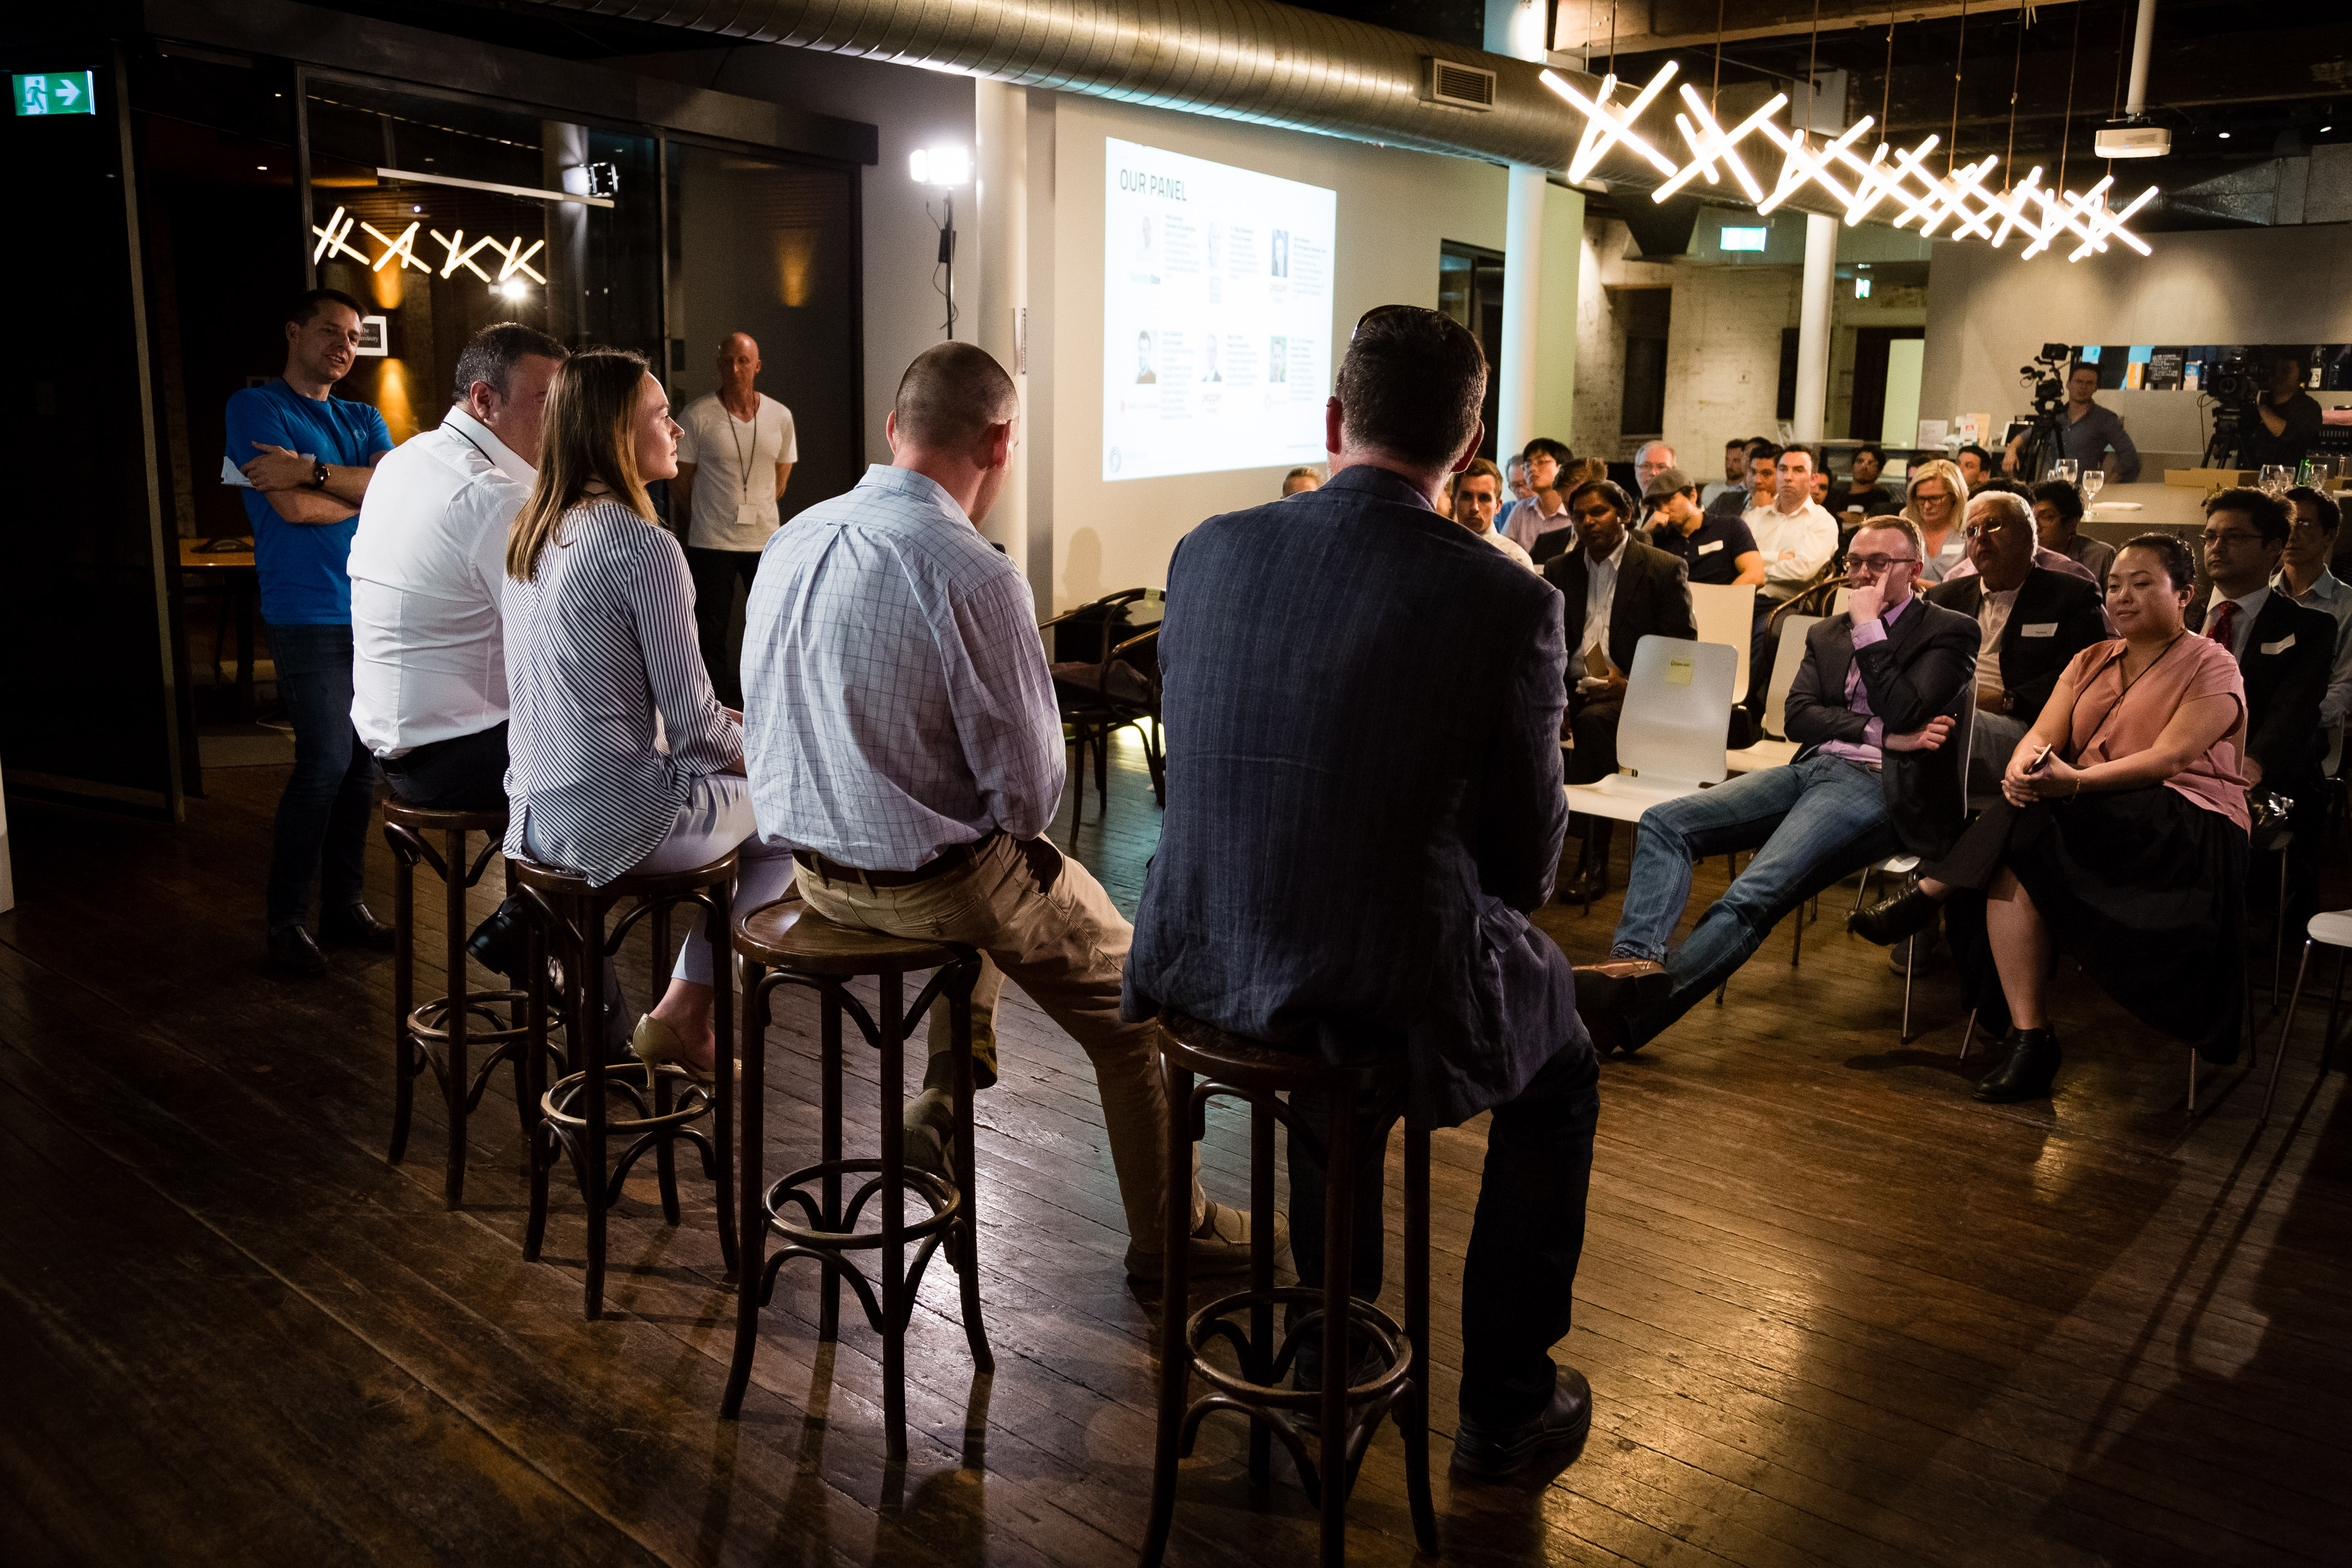 Photos from the Free | Money launch event